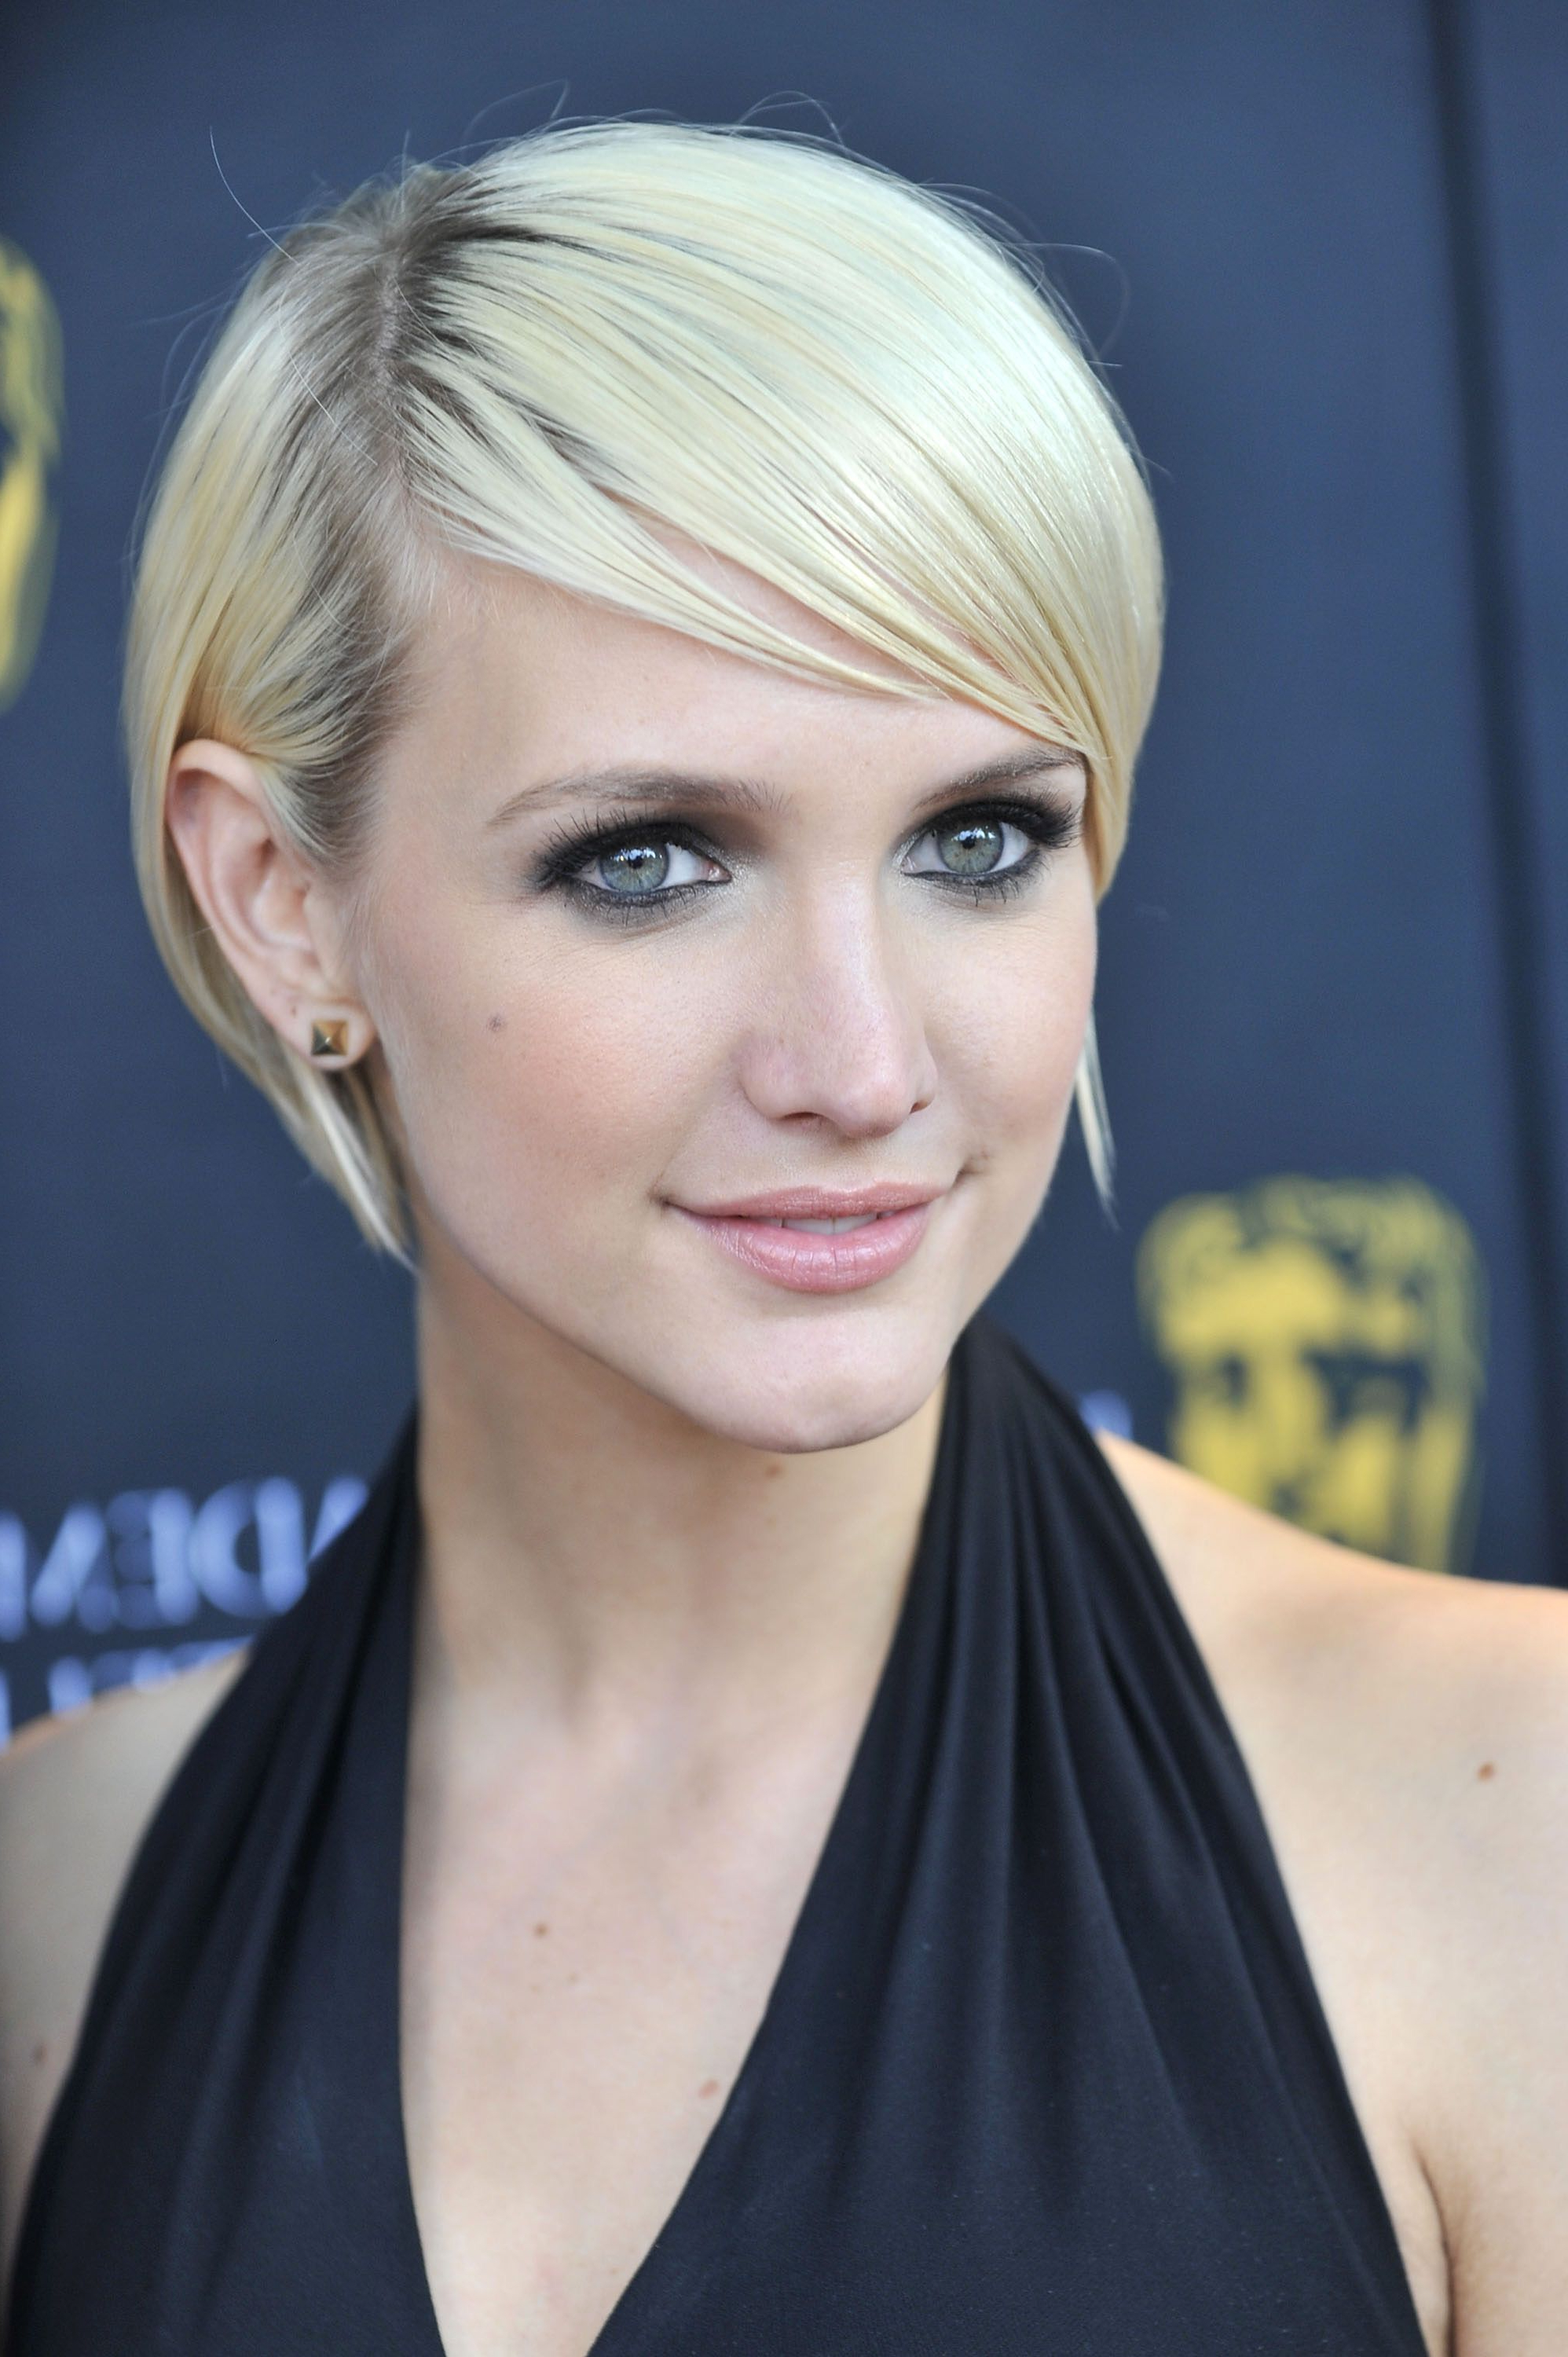 Ashlee Simpson Short Hair  So Wish I Could This! | Good Hair Inside Ashlee Simpson Short Haircuts (Gallery 6 of 25)